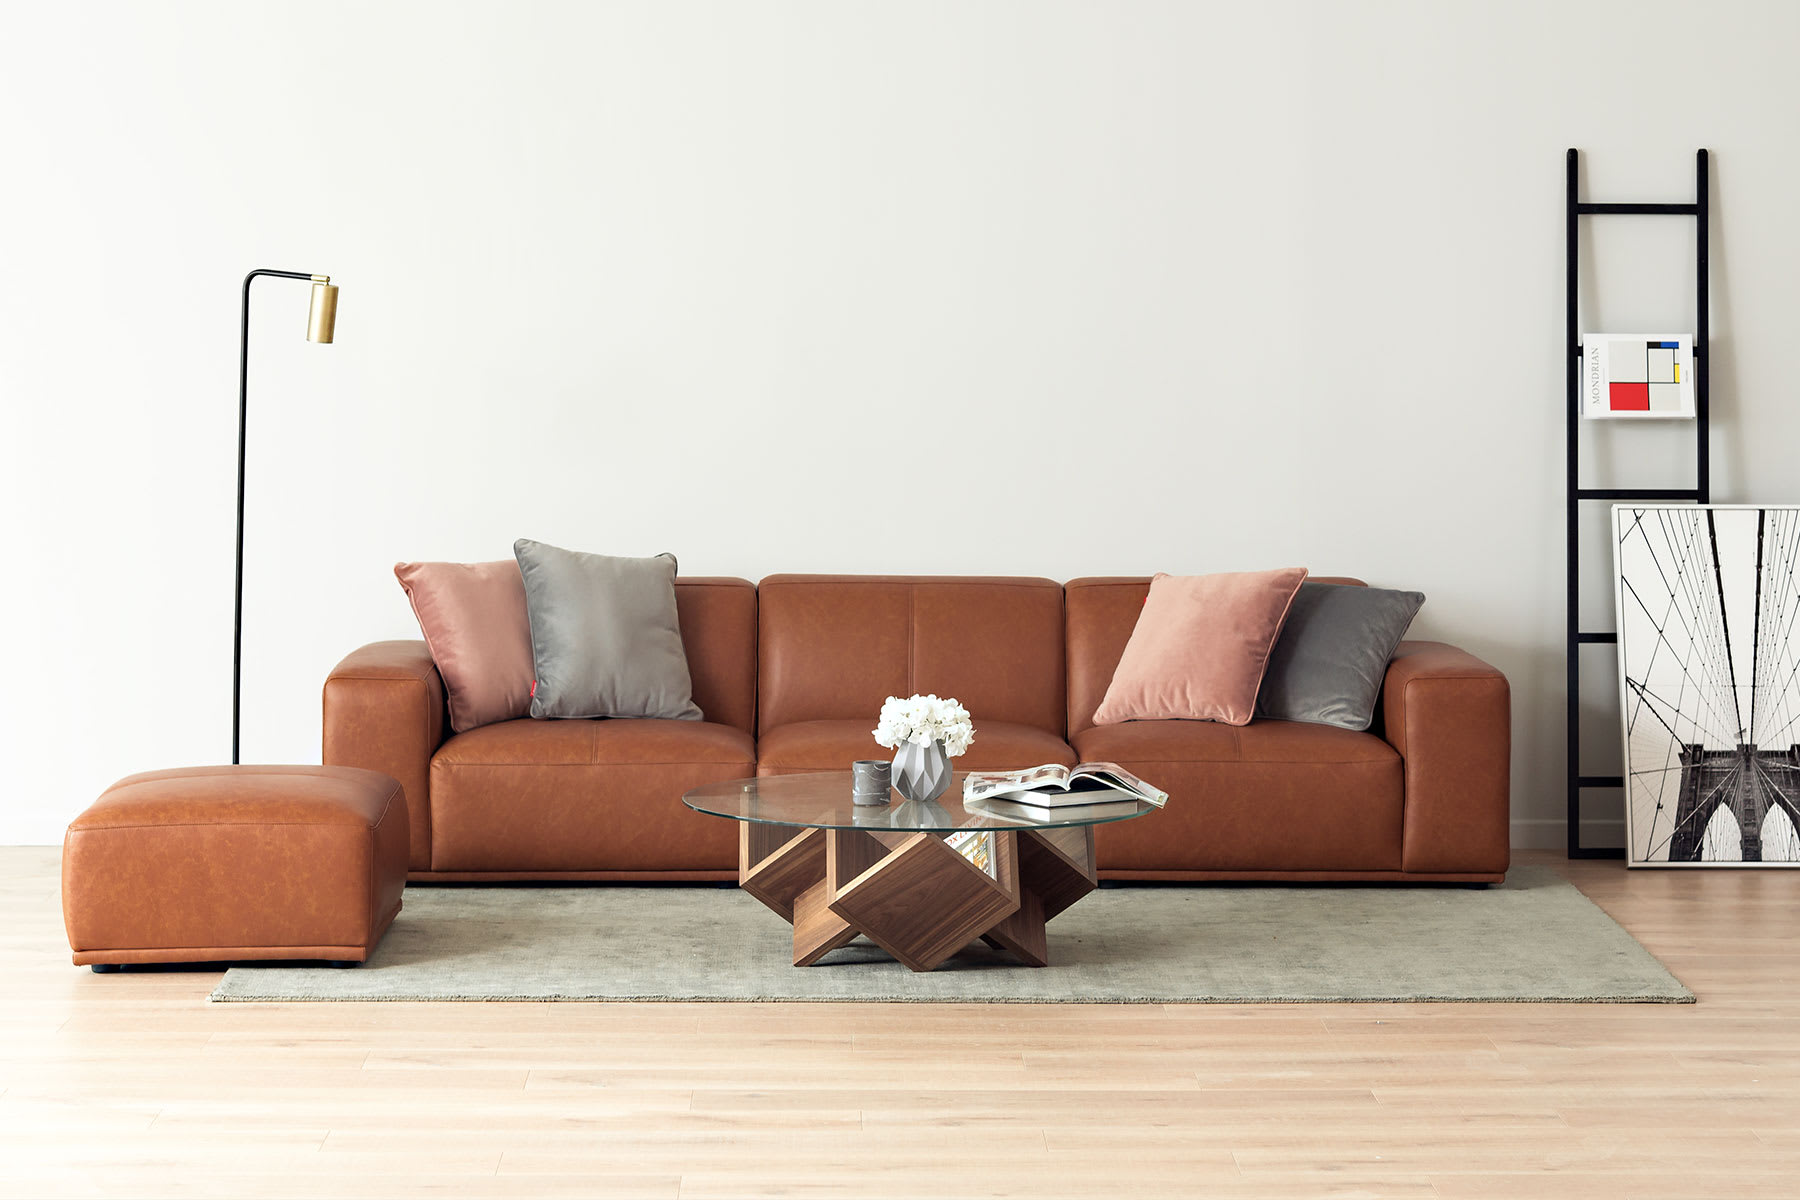 living room furniture with brown leather sofa, coffee table and rug